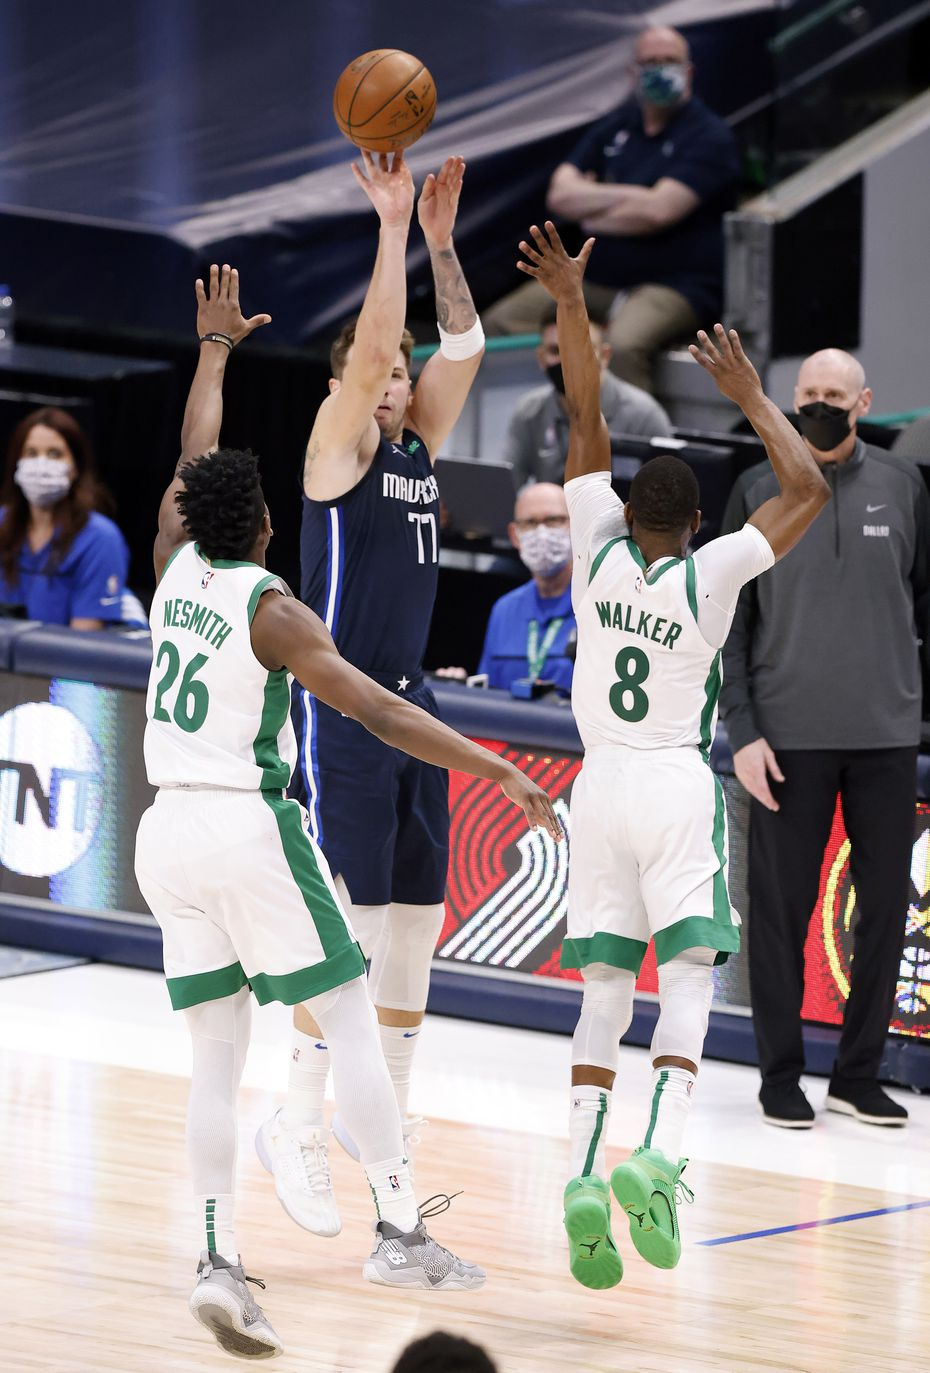 Dallas Mavericks guard Luka Doncic (77) takes the game-winning shot over Boston Celtics forward Aaron Nesmith (26) and guard Kemba Walker (8) during the fourth quarter at the American Airlines Center in Dallas, Tuesday, February 23, 2021.